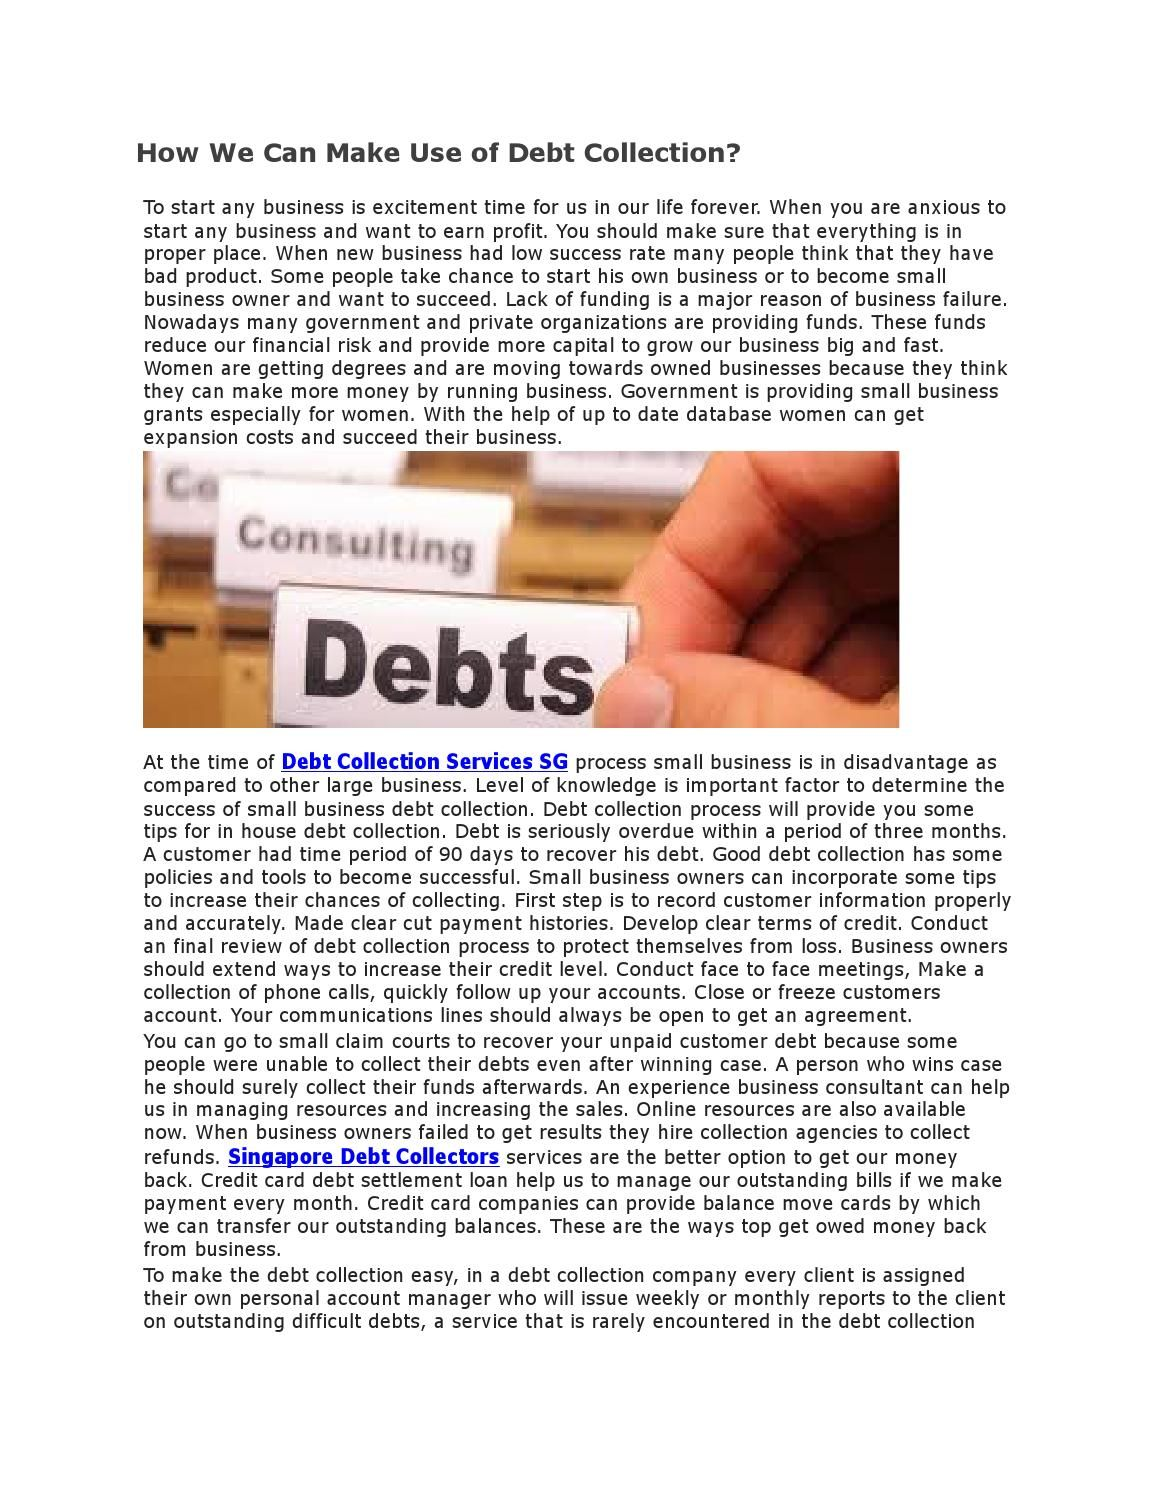 How we can make use of debt collection Debt collection